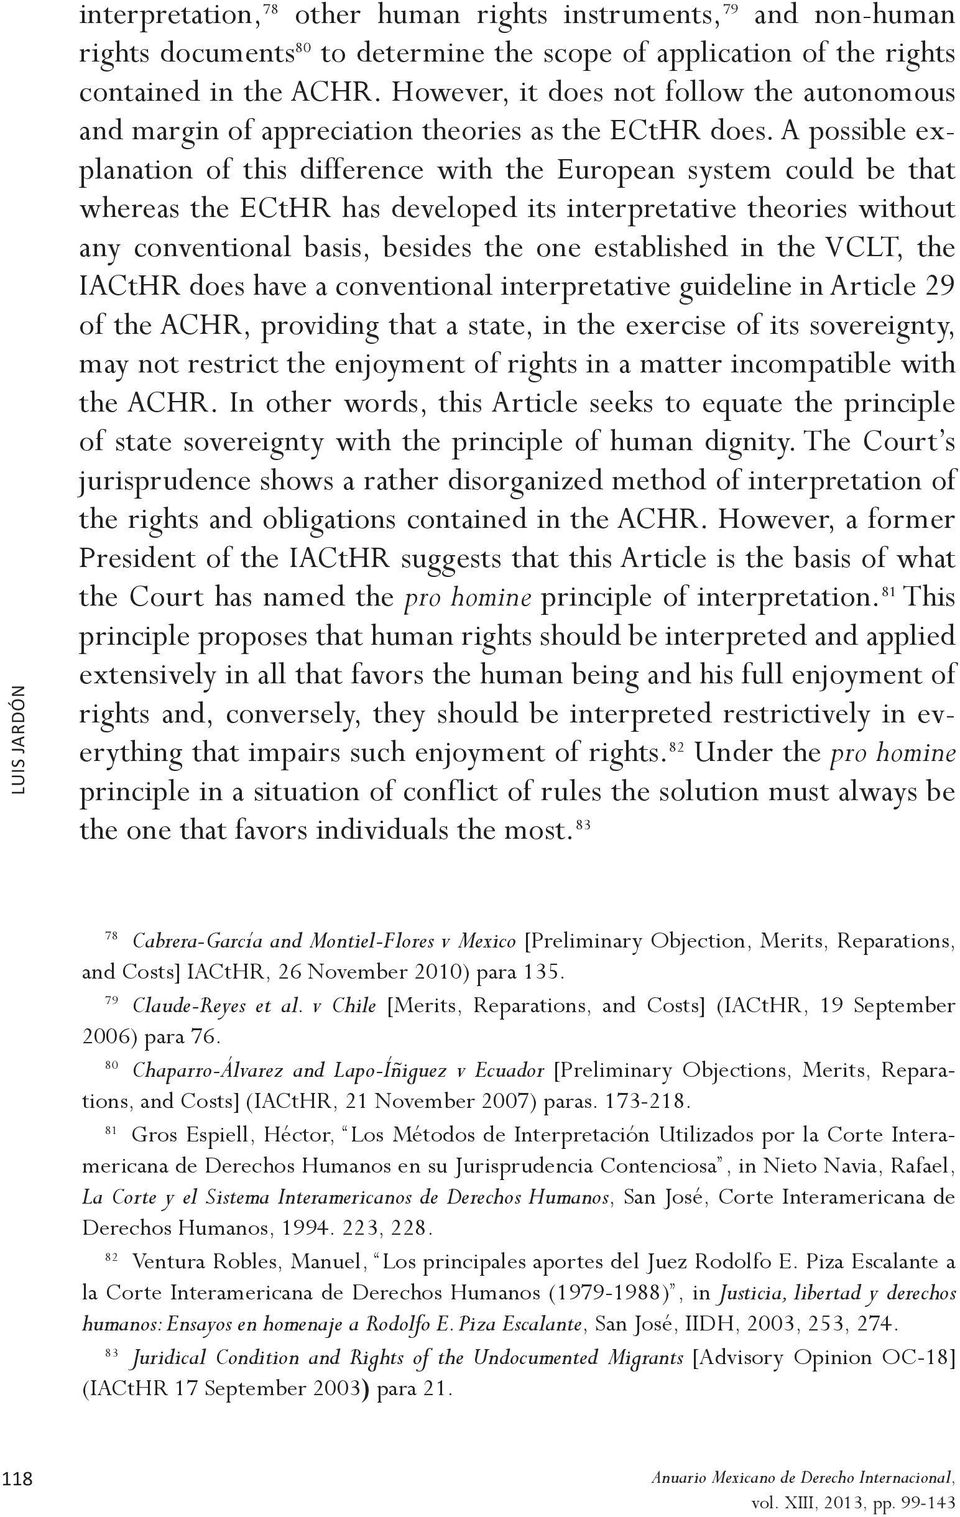 A possible explanation of this difference with the European system could be that whereas the ECtHR has developed its interpretative theories without any conventional basis, besides the one